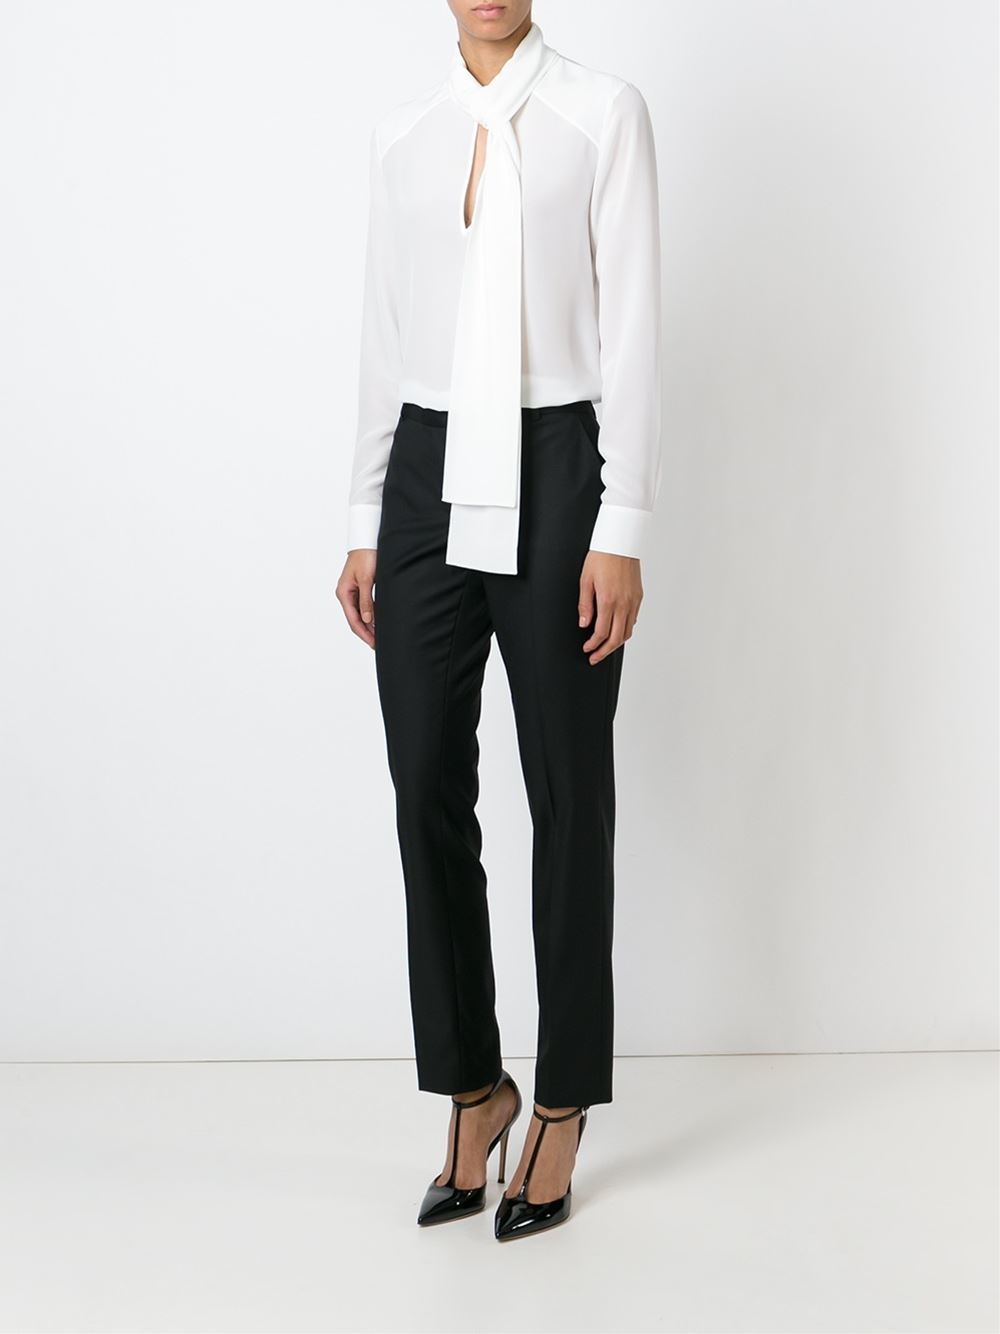 Ebay Givenchy tie neck blouse Sale Get To Buy Cheap Many Kinds Of Sale 100% Original Clearance Best Seller 5ZEo5